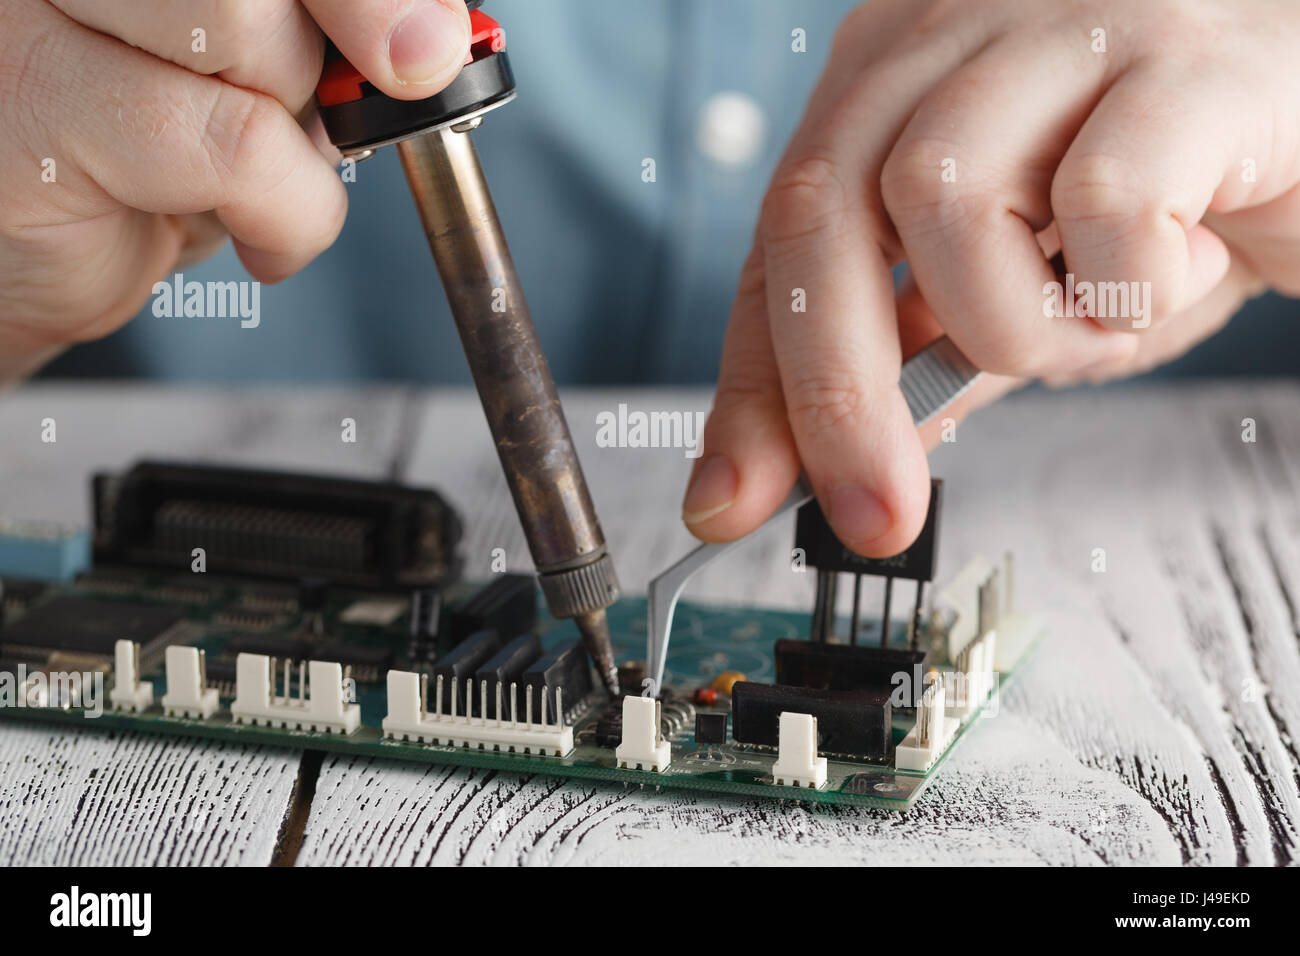 Soldering Iron For Circuit Board Repair Complete Wiring Diagrams Best Solder Boards Engineer With Stock Photo Rh Alamy Com Electronics Jumpers